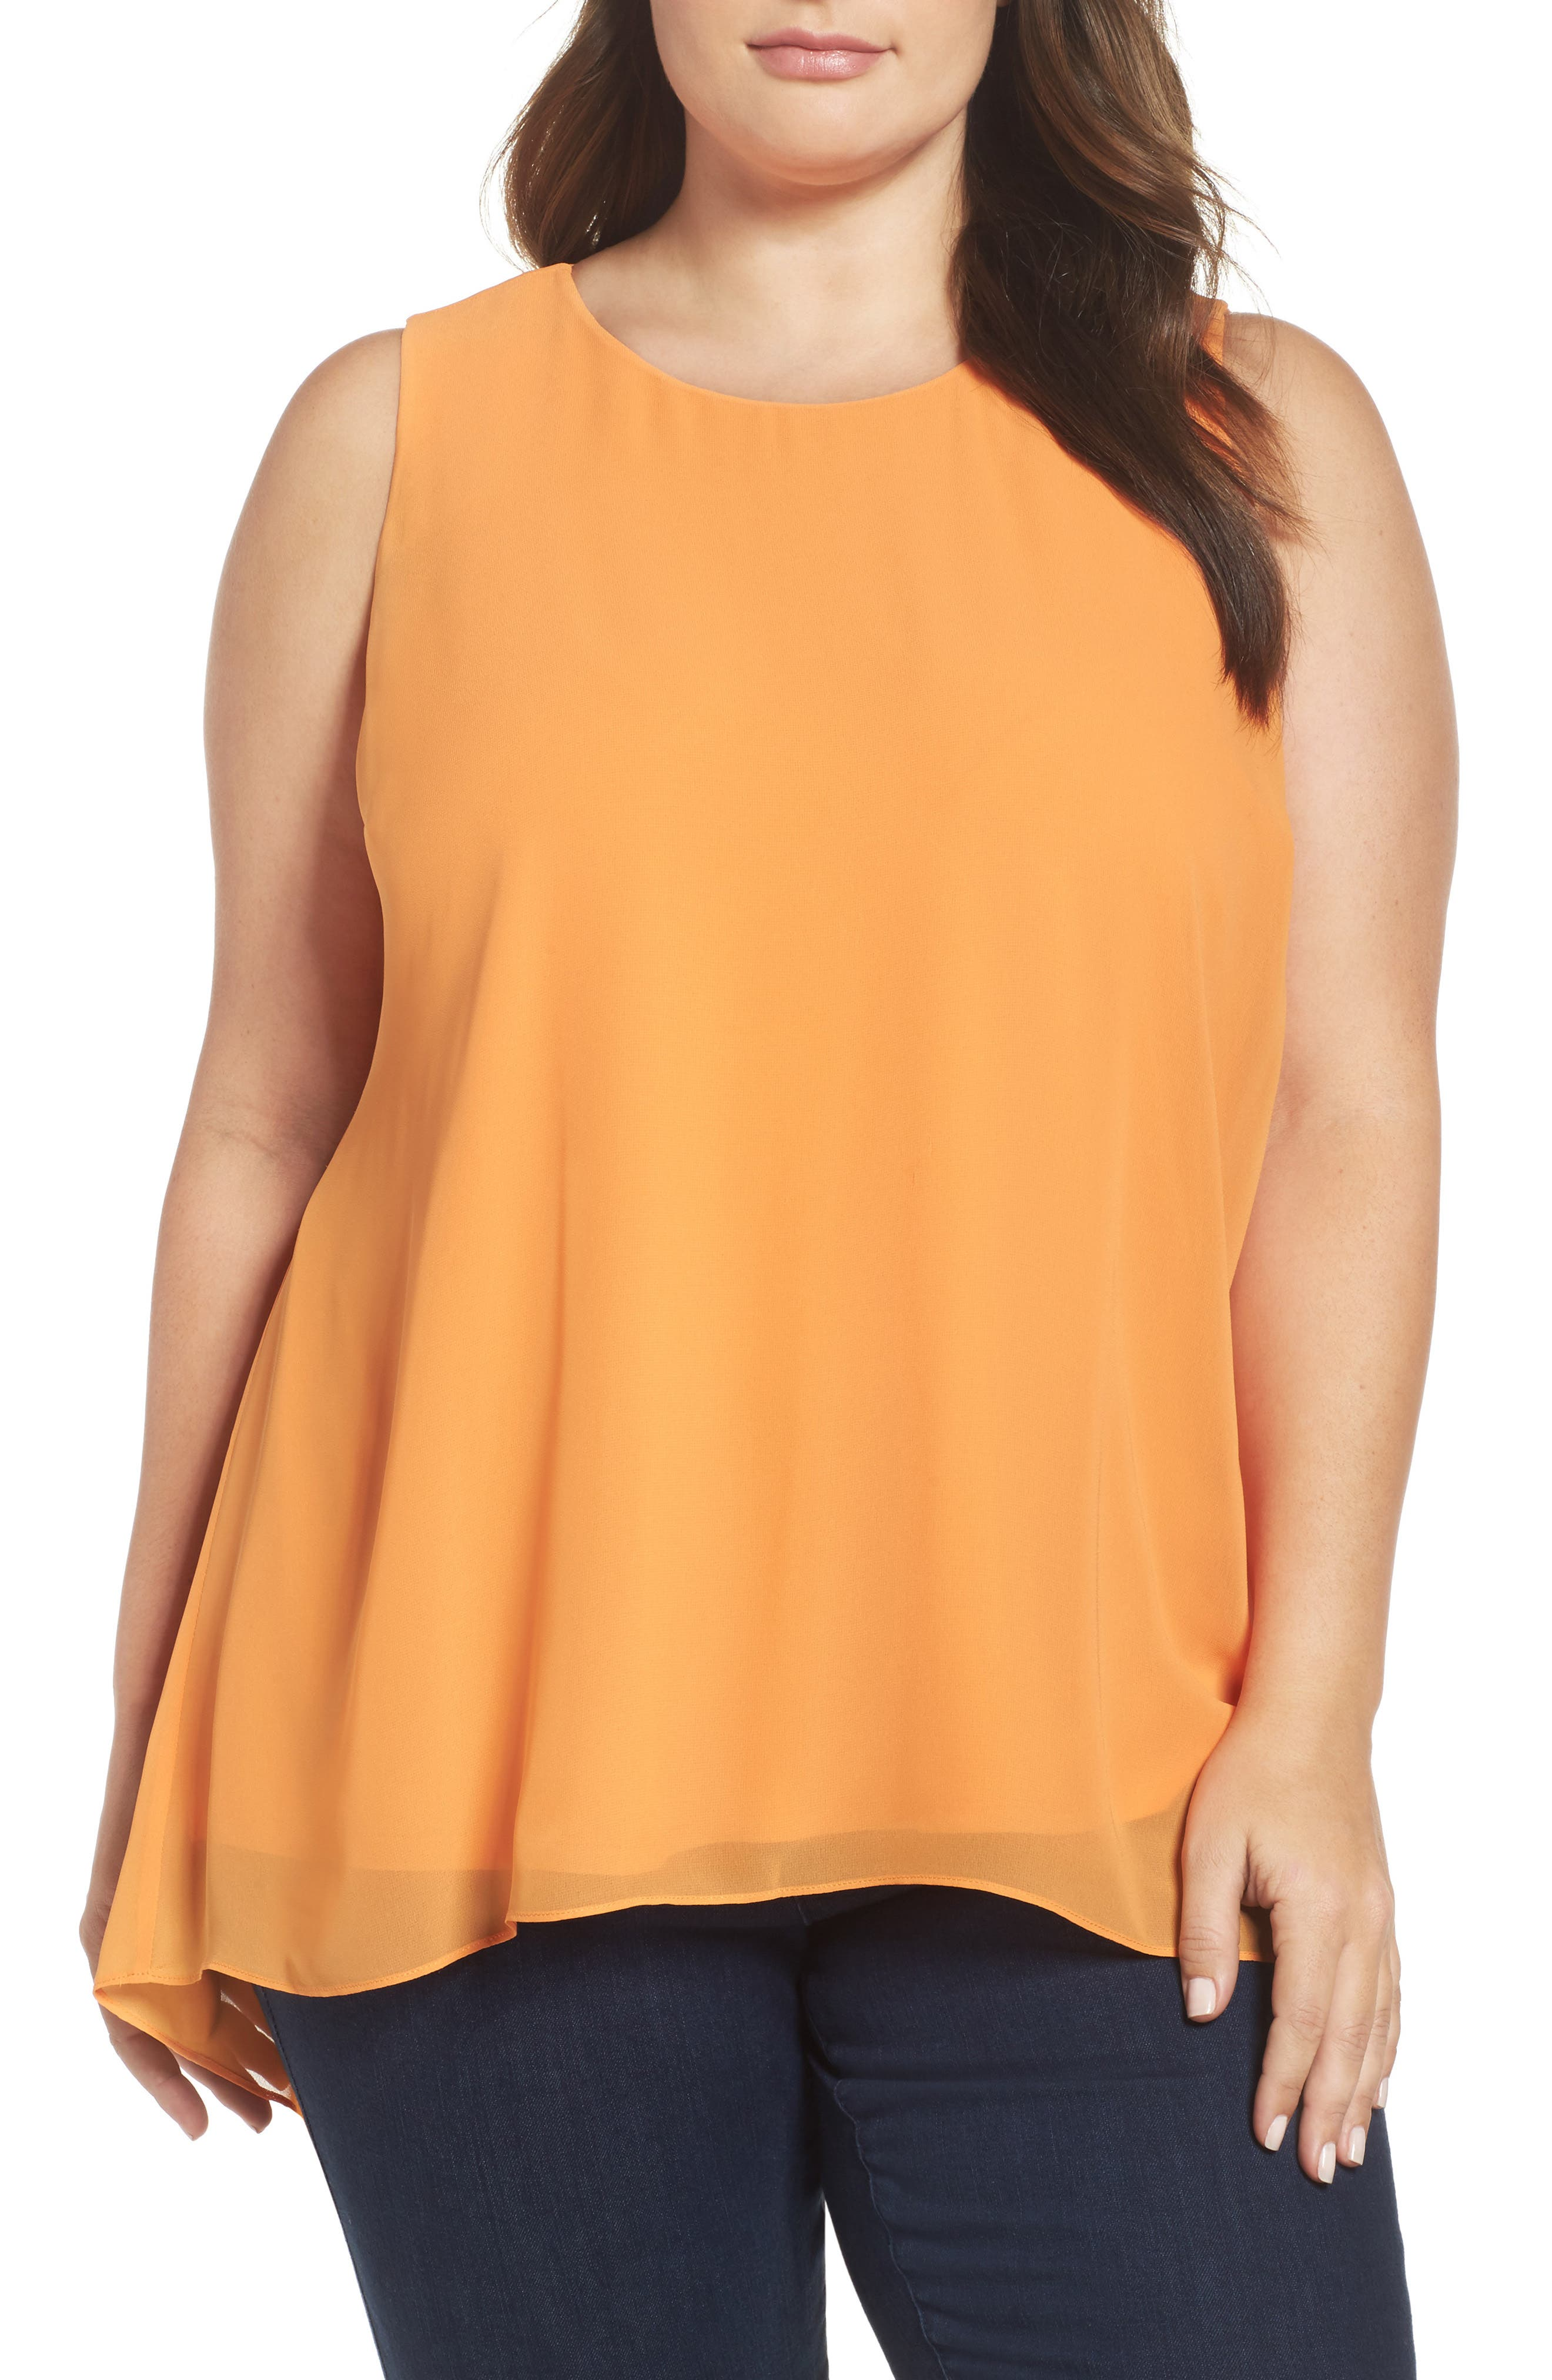 Main Image - Vince Camuto Knit Lined High/Low Blouse